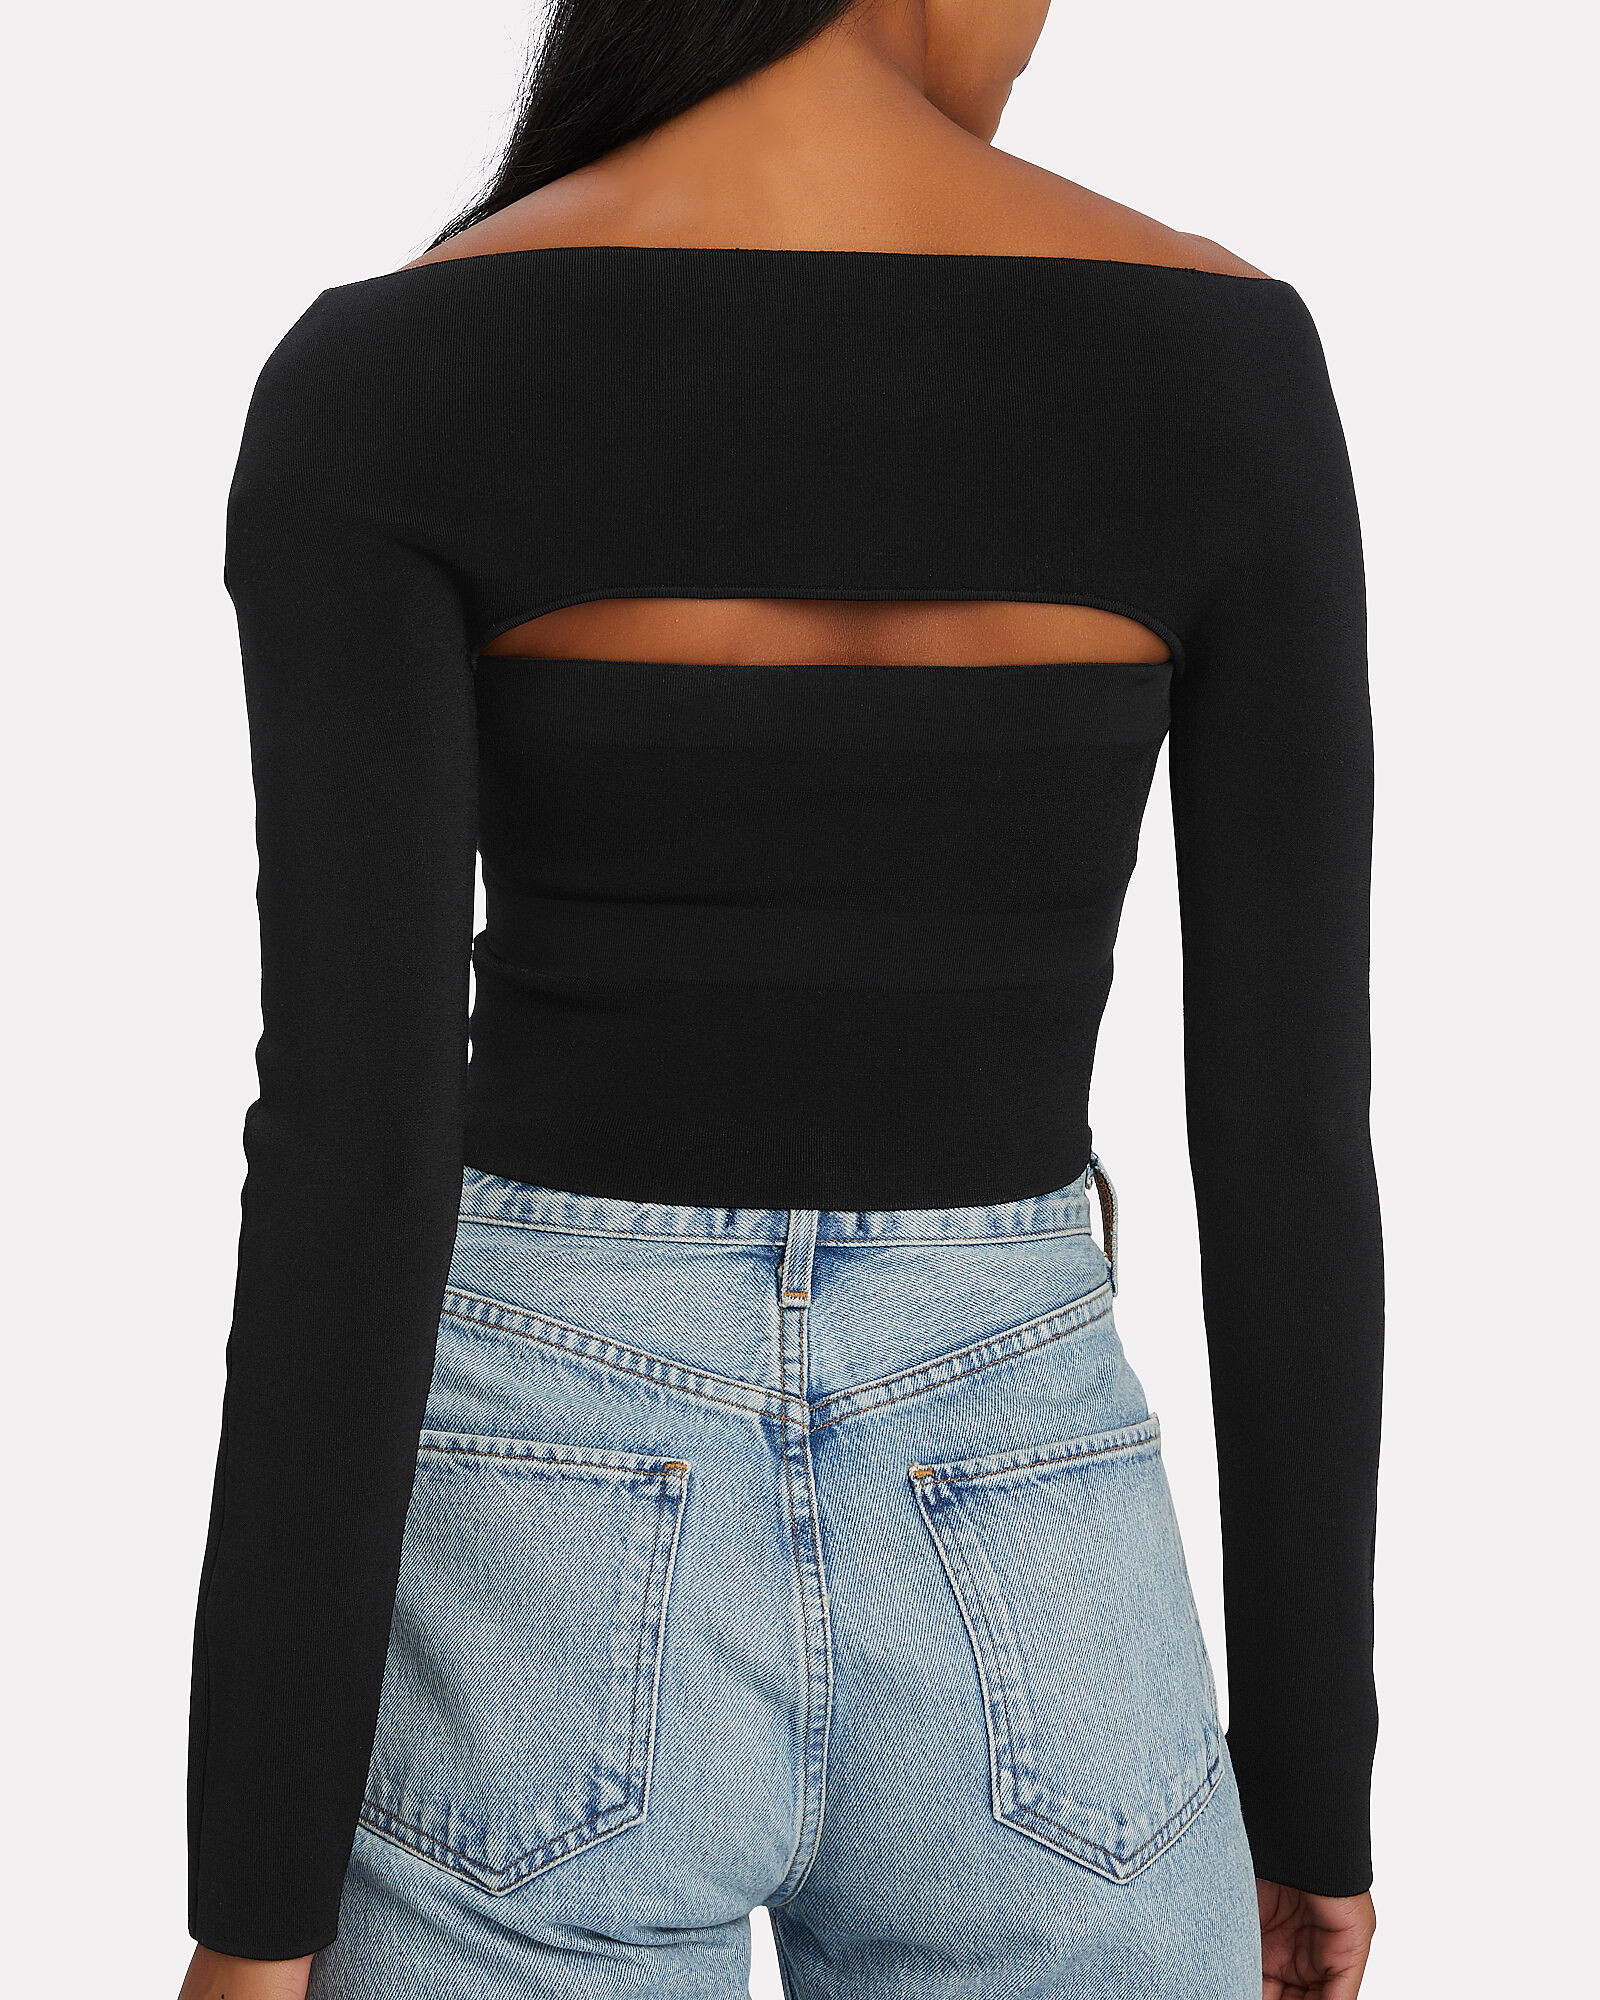 Jersey Tube Top Set, BLACK, hi-res